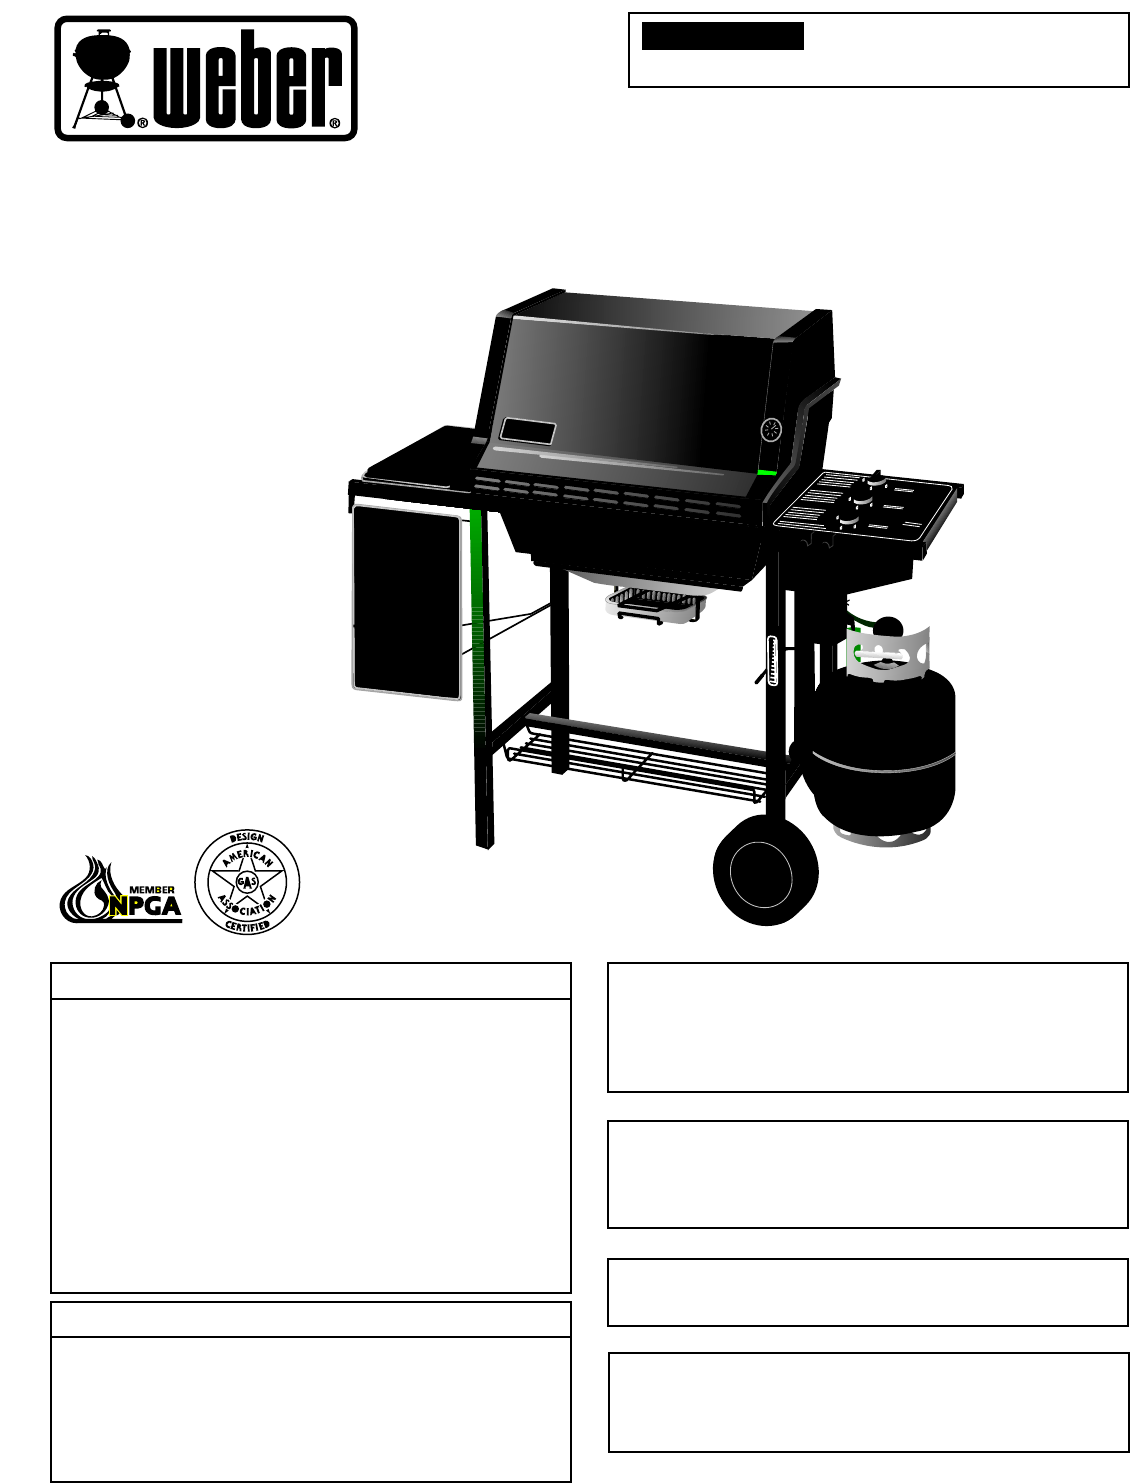 weber gas grill 700 user guide. Black Bedroom Furniture Sets. Home Design Ideas